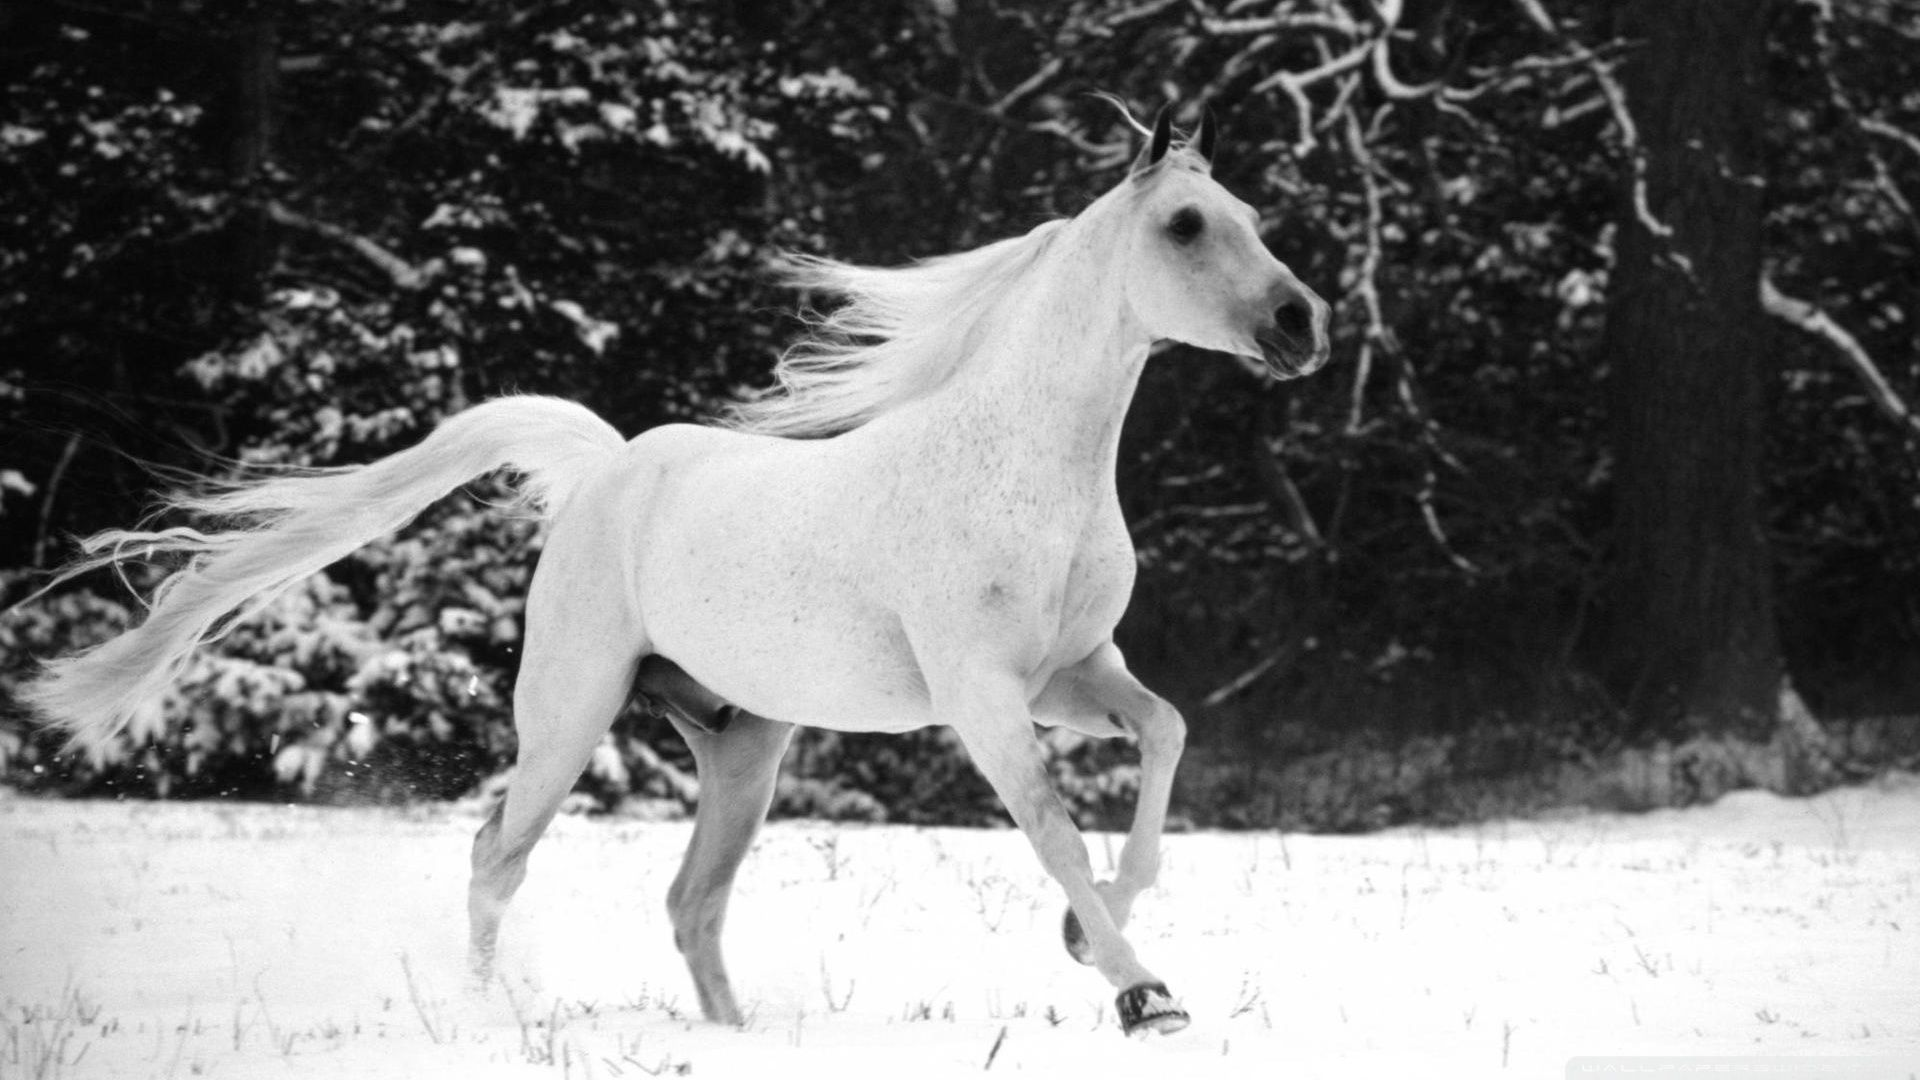 Top Wallpaper Horse Winter - ebd5796d05f595023214e6babd845223  Graphic_394274.jpg